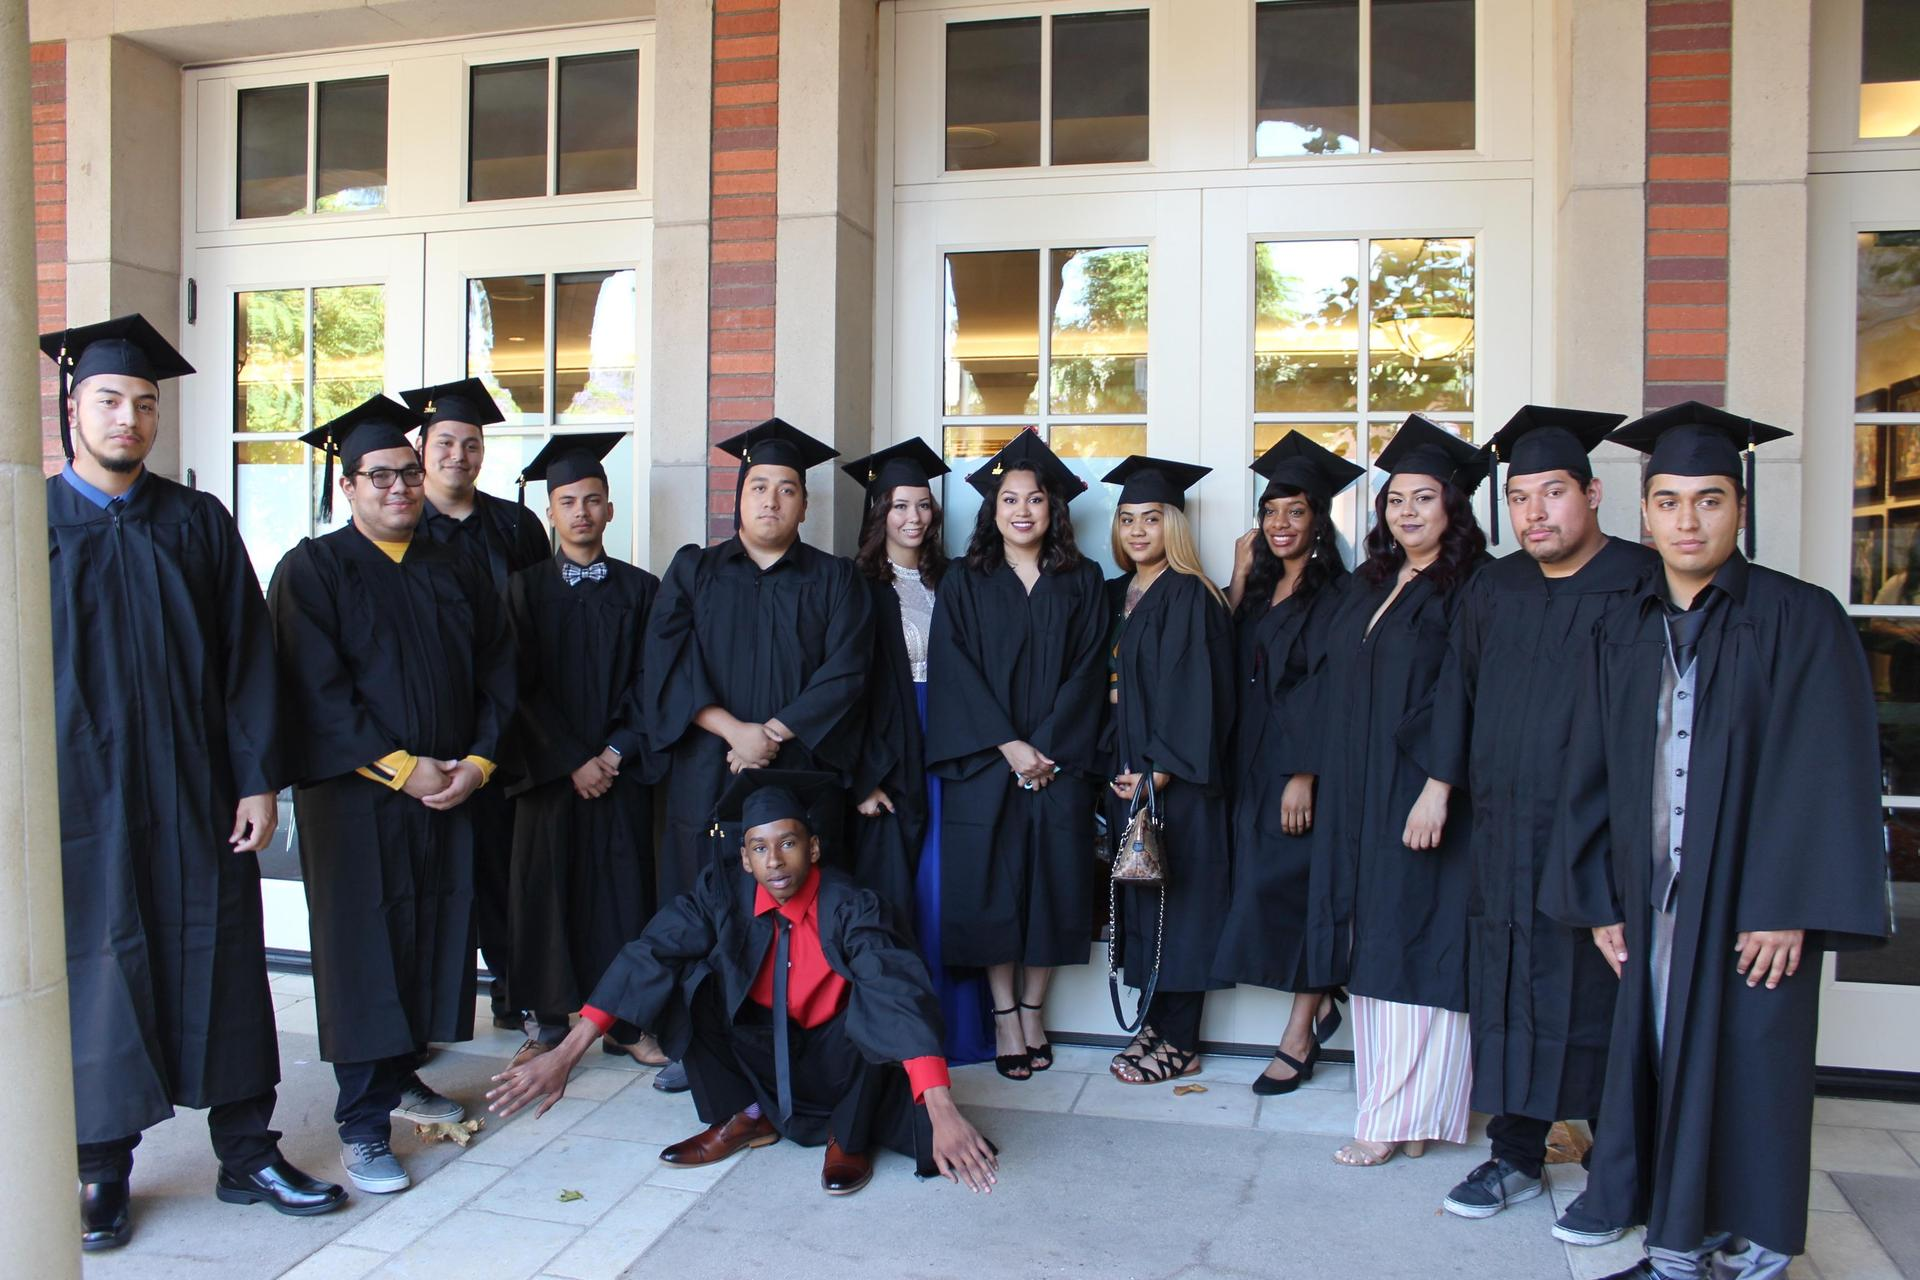 Avalon site Class of 2018 pose with grad caps